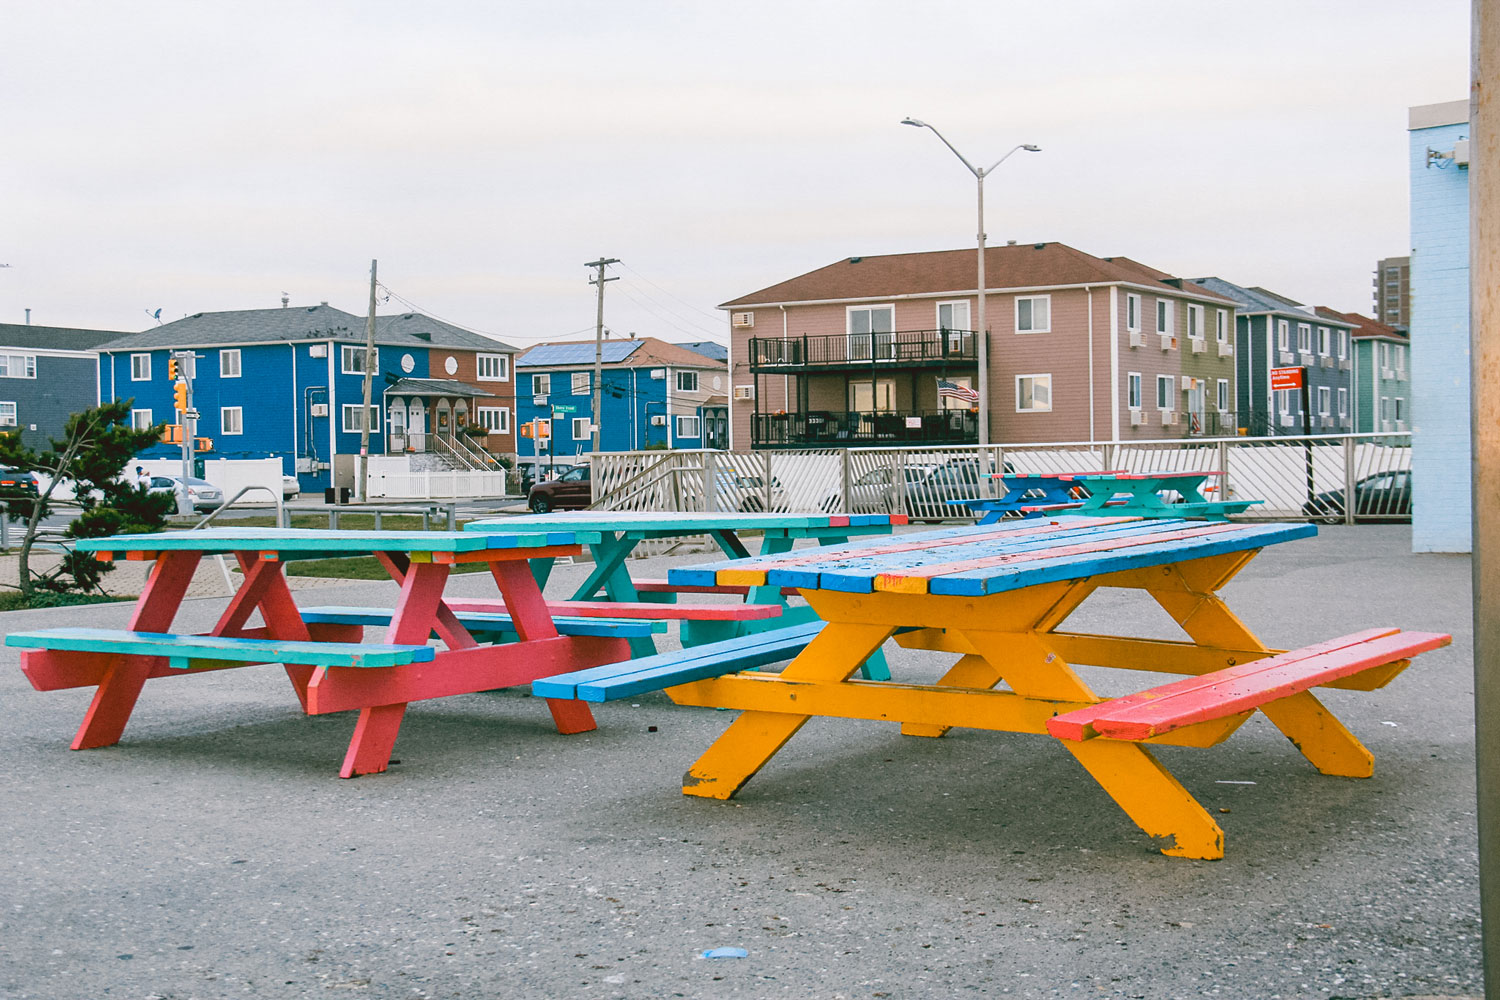 Colorful picnic tables in a park.